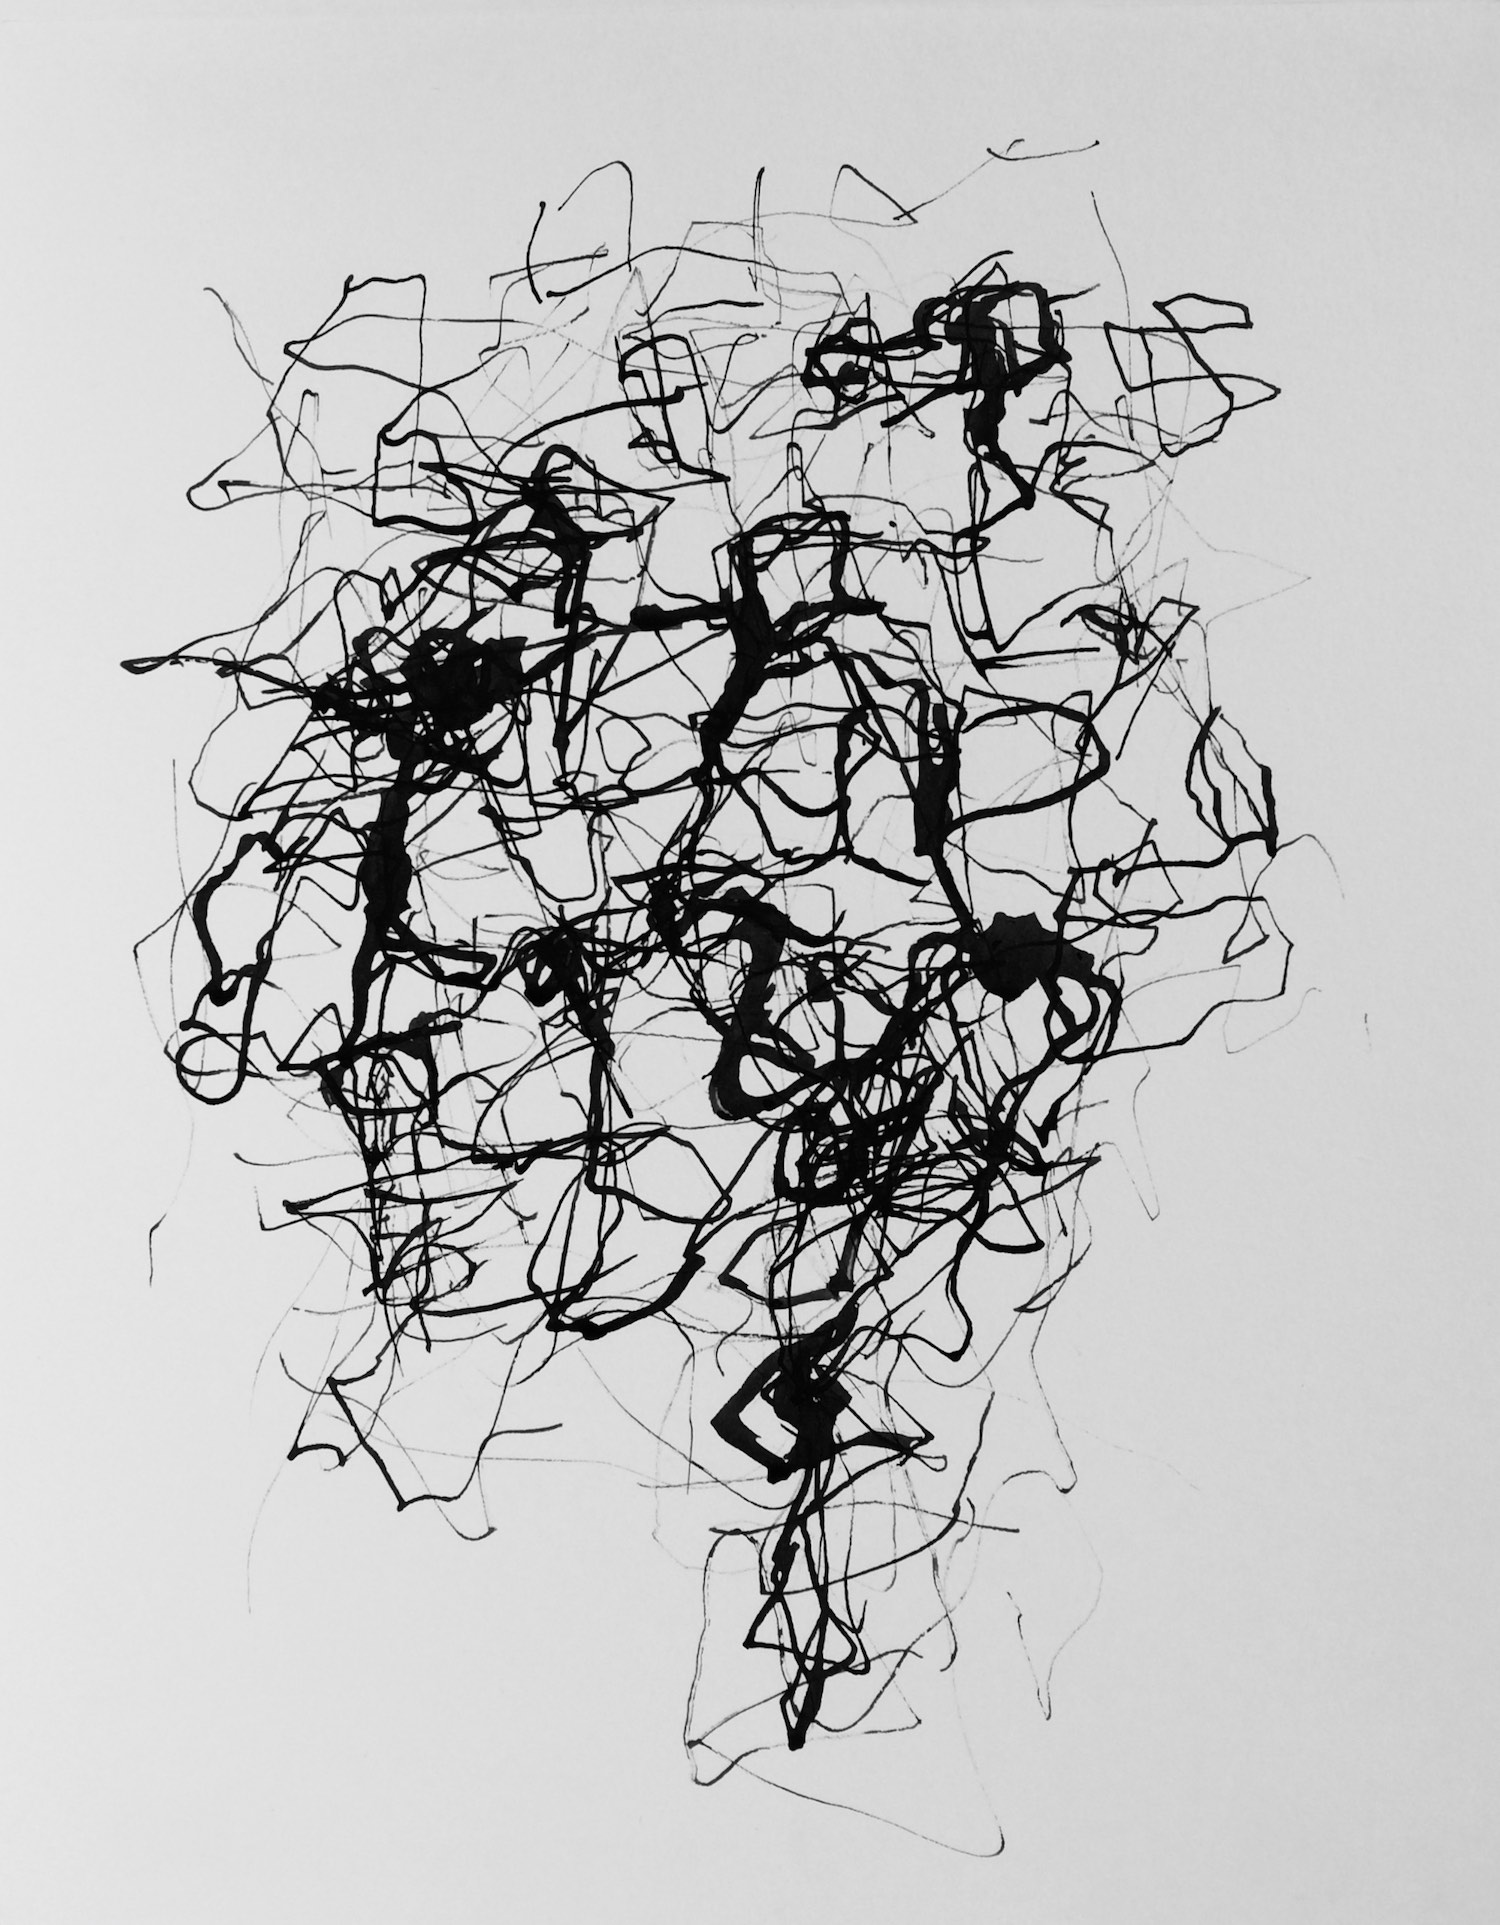 Moving Forms (7)    505x380mm (19.9x14.9in)  Ink on paper